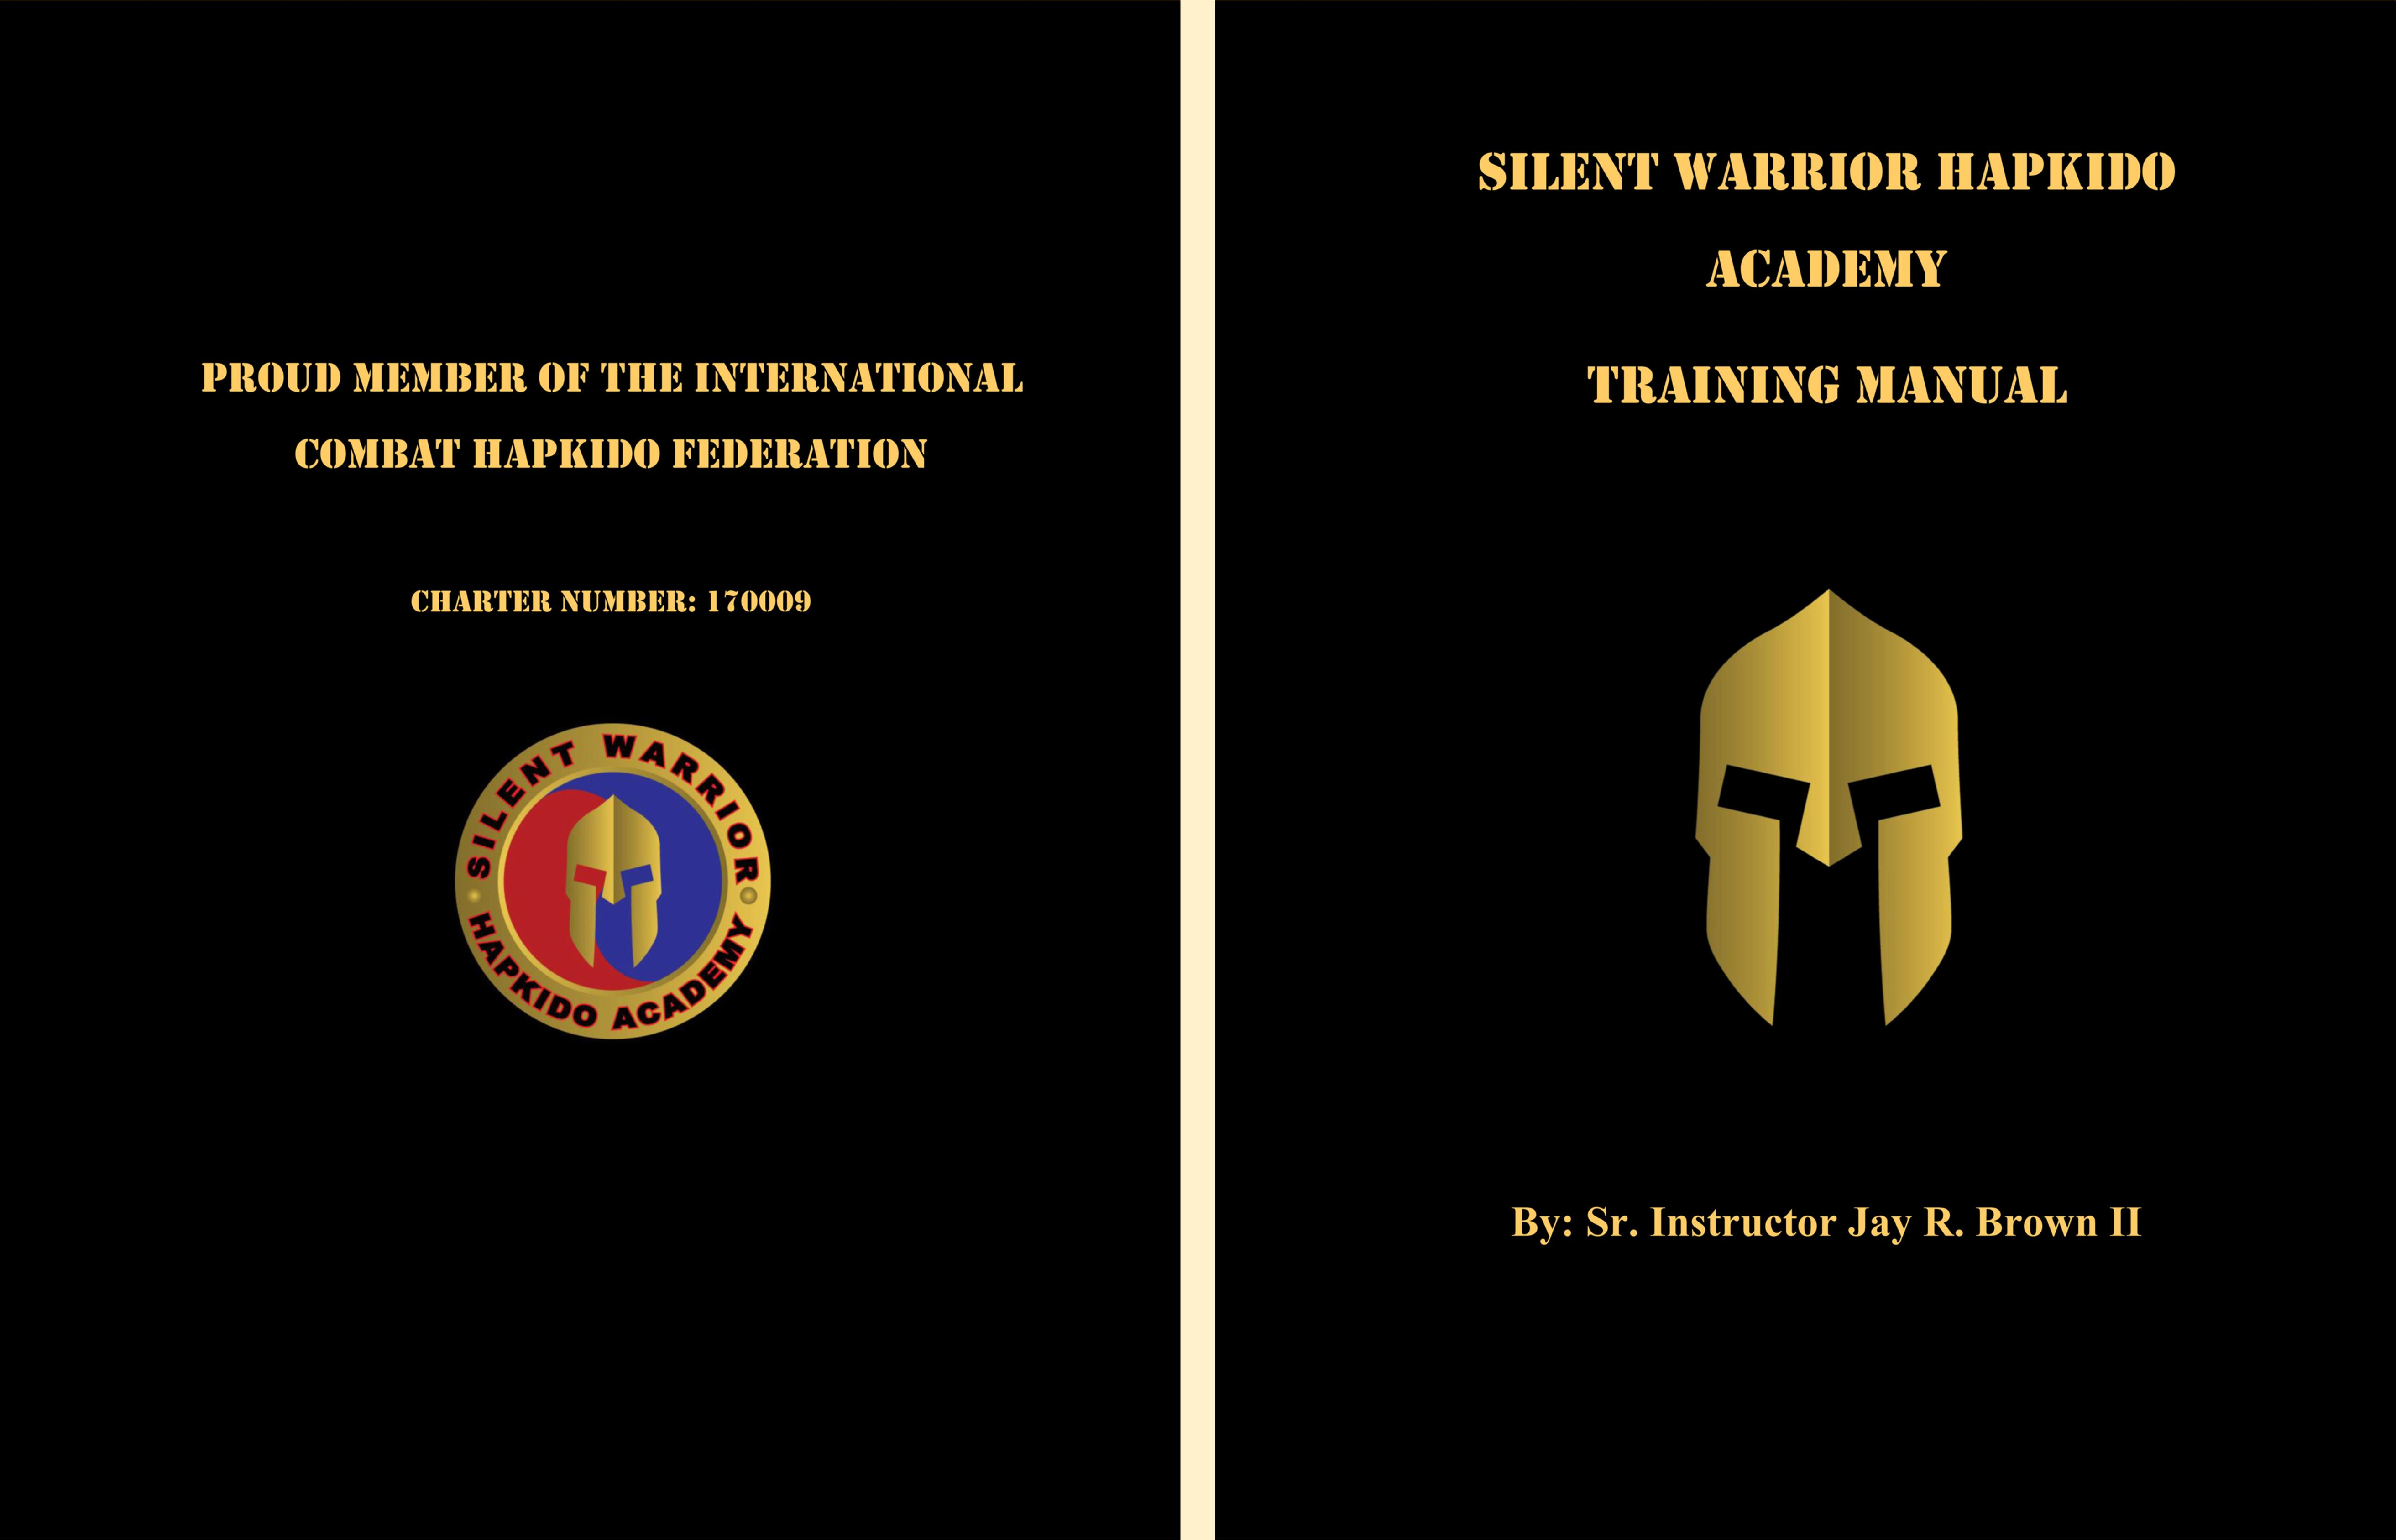 Hapkido manual ebook array silent warrior hapkido academy training manual by jay brown 15 00 rh thebookpatch com fandeluxe Images